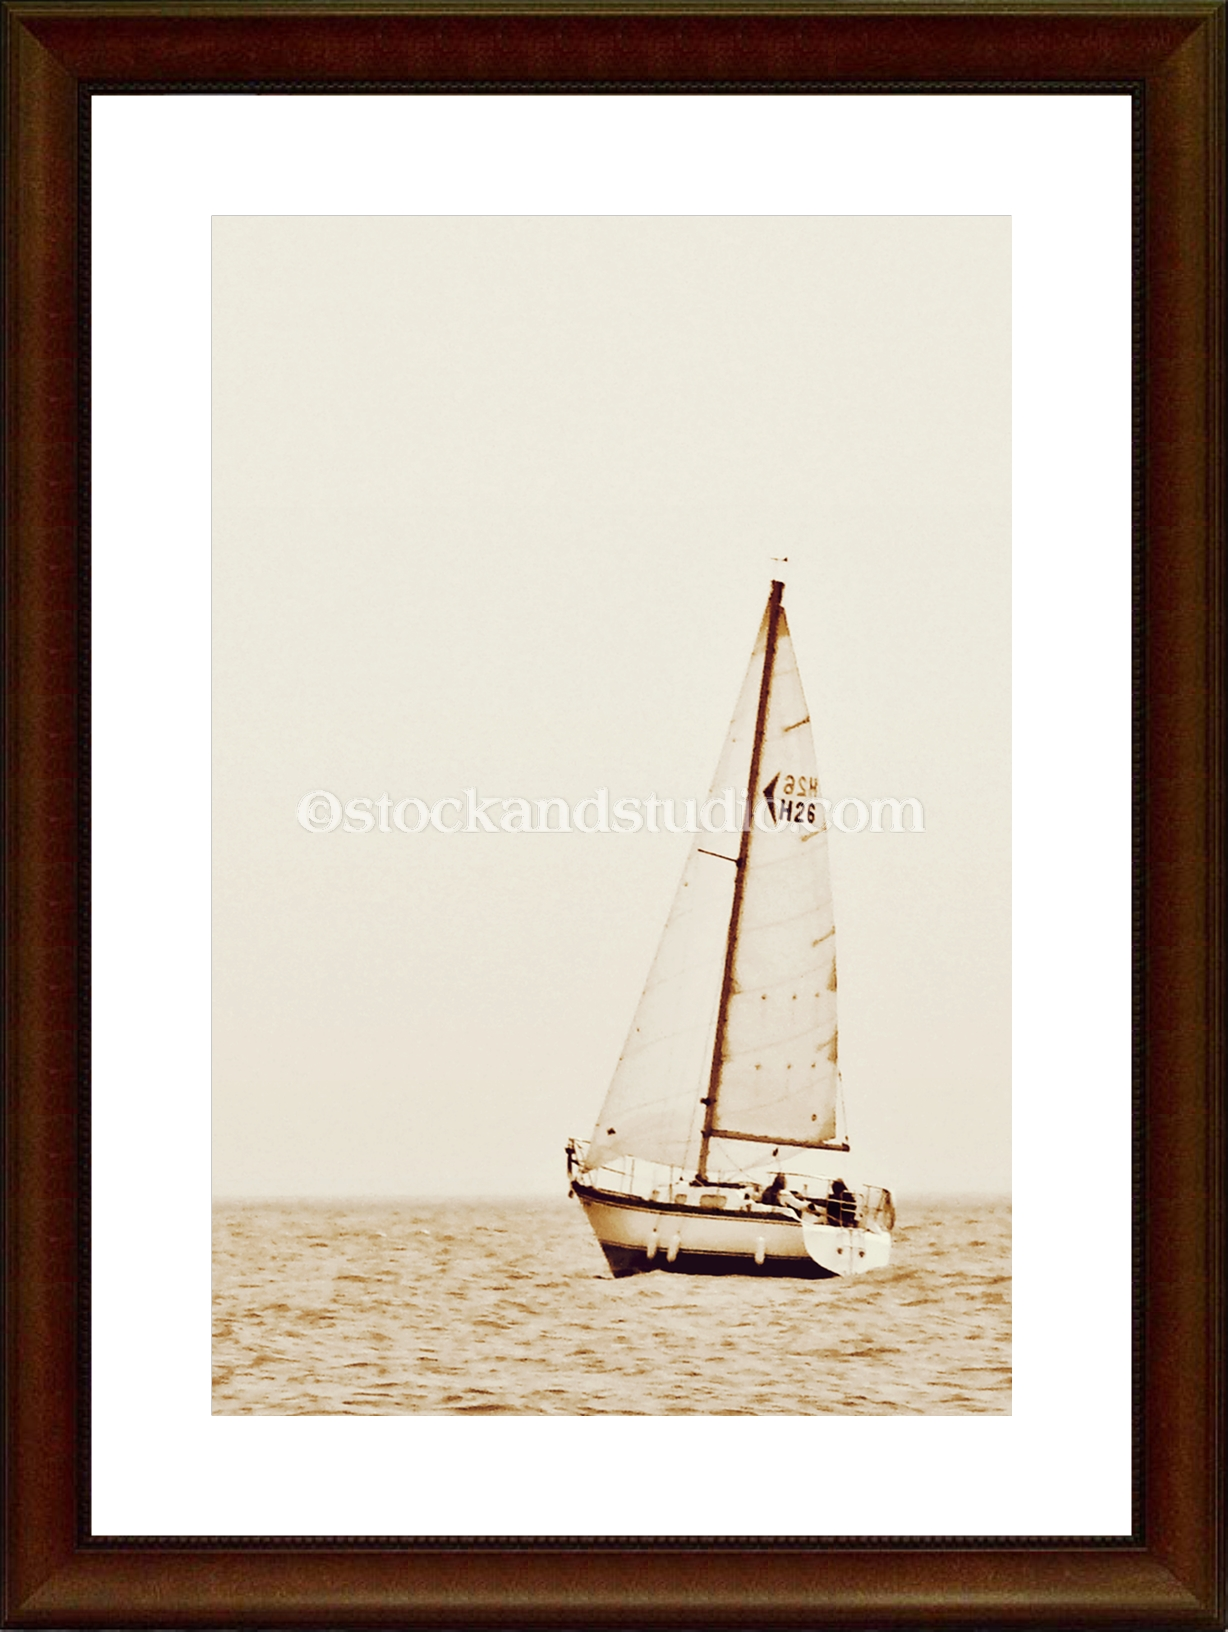 sailboat-sep-cropped-framed